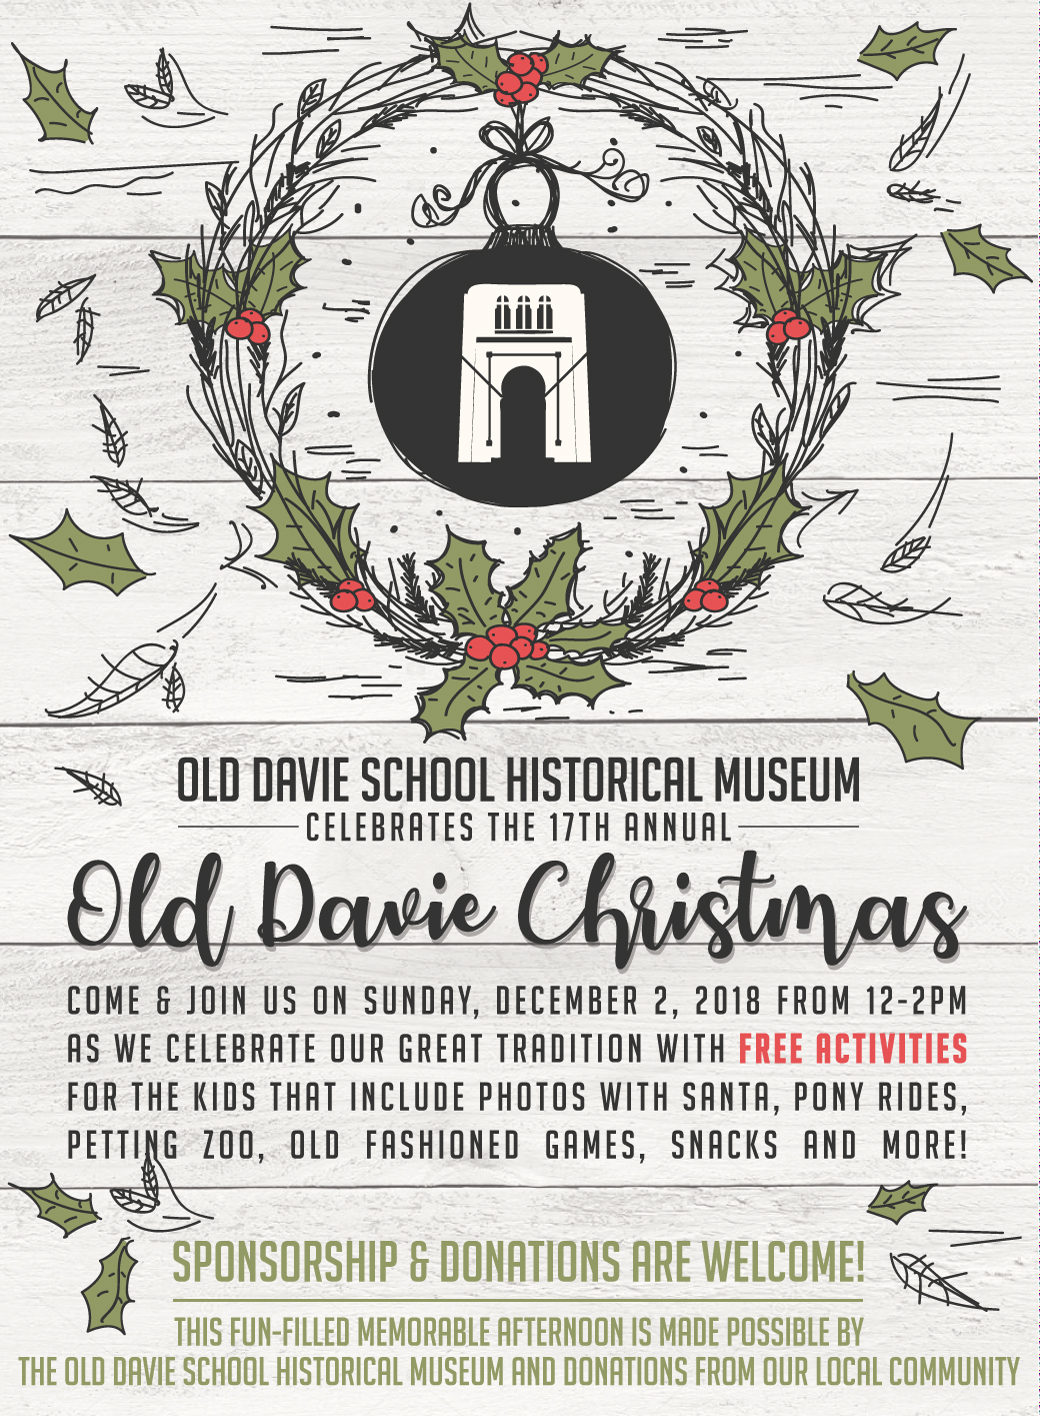 Old Davie Christmas – Old Davie School Historical Museum